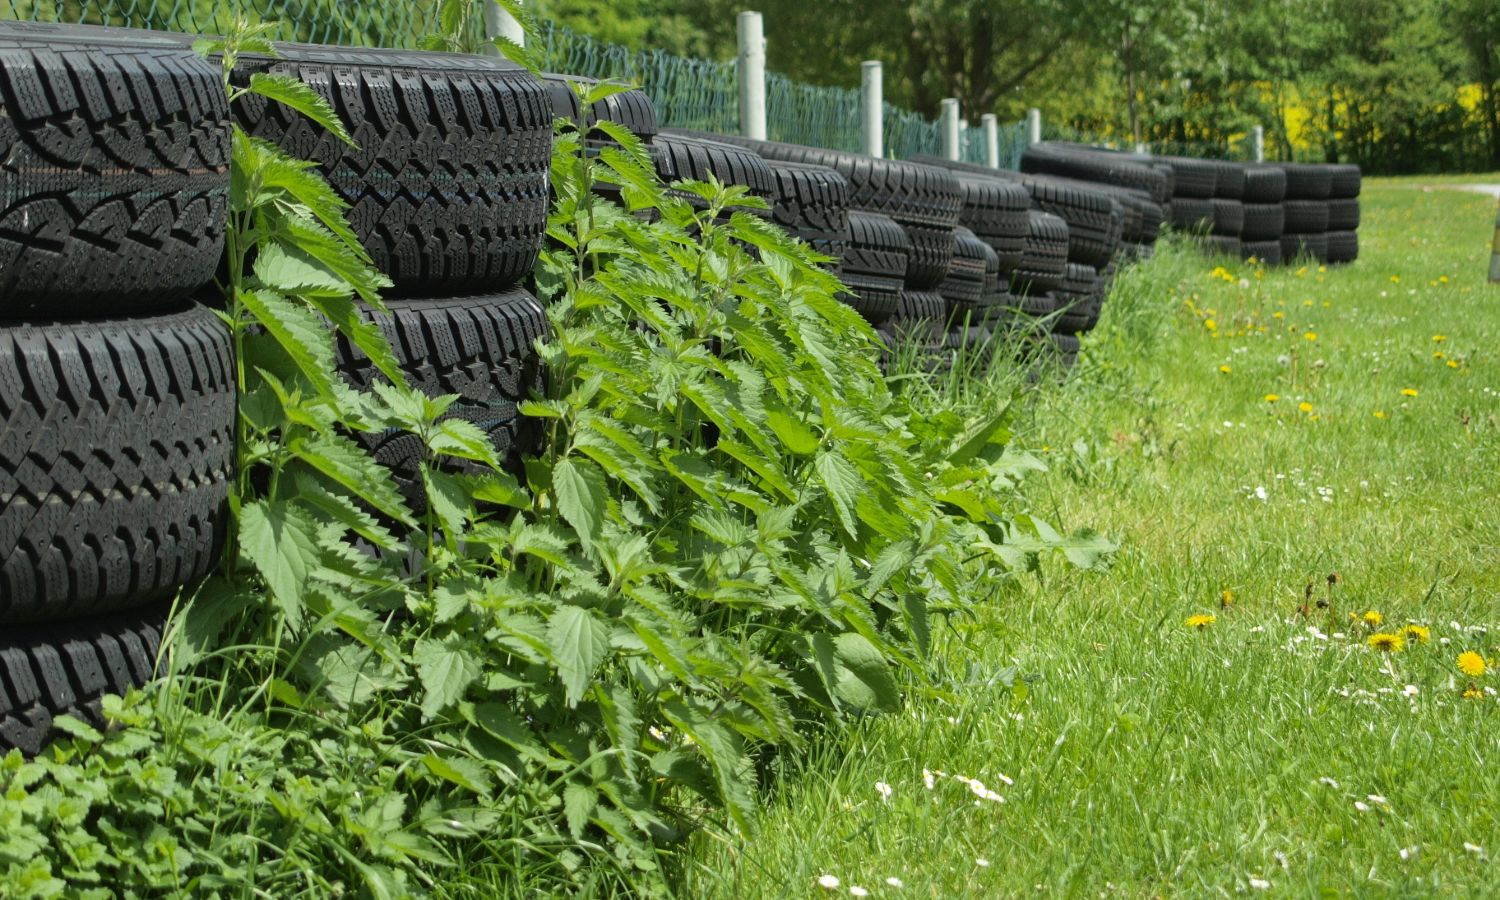 Used Tire DIY Compost Bin